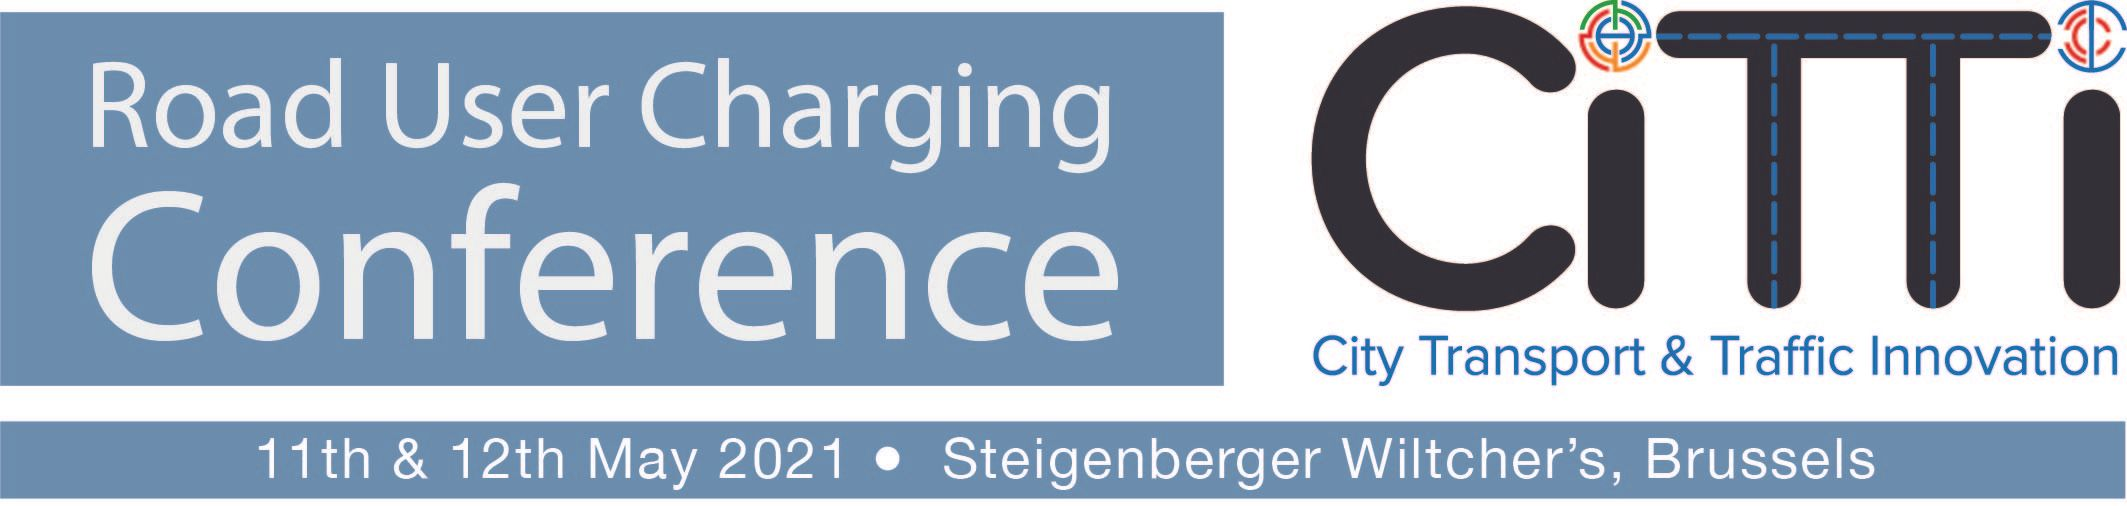 Road User Charging Conference 2021